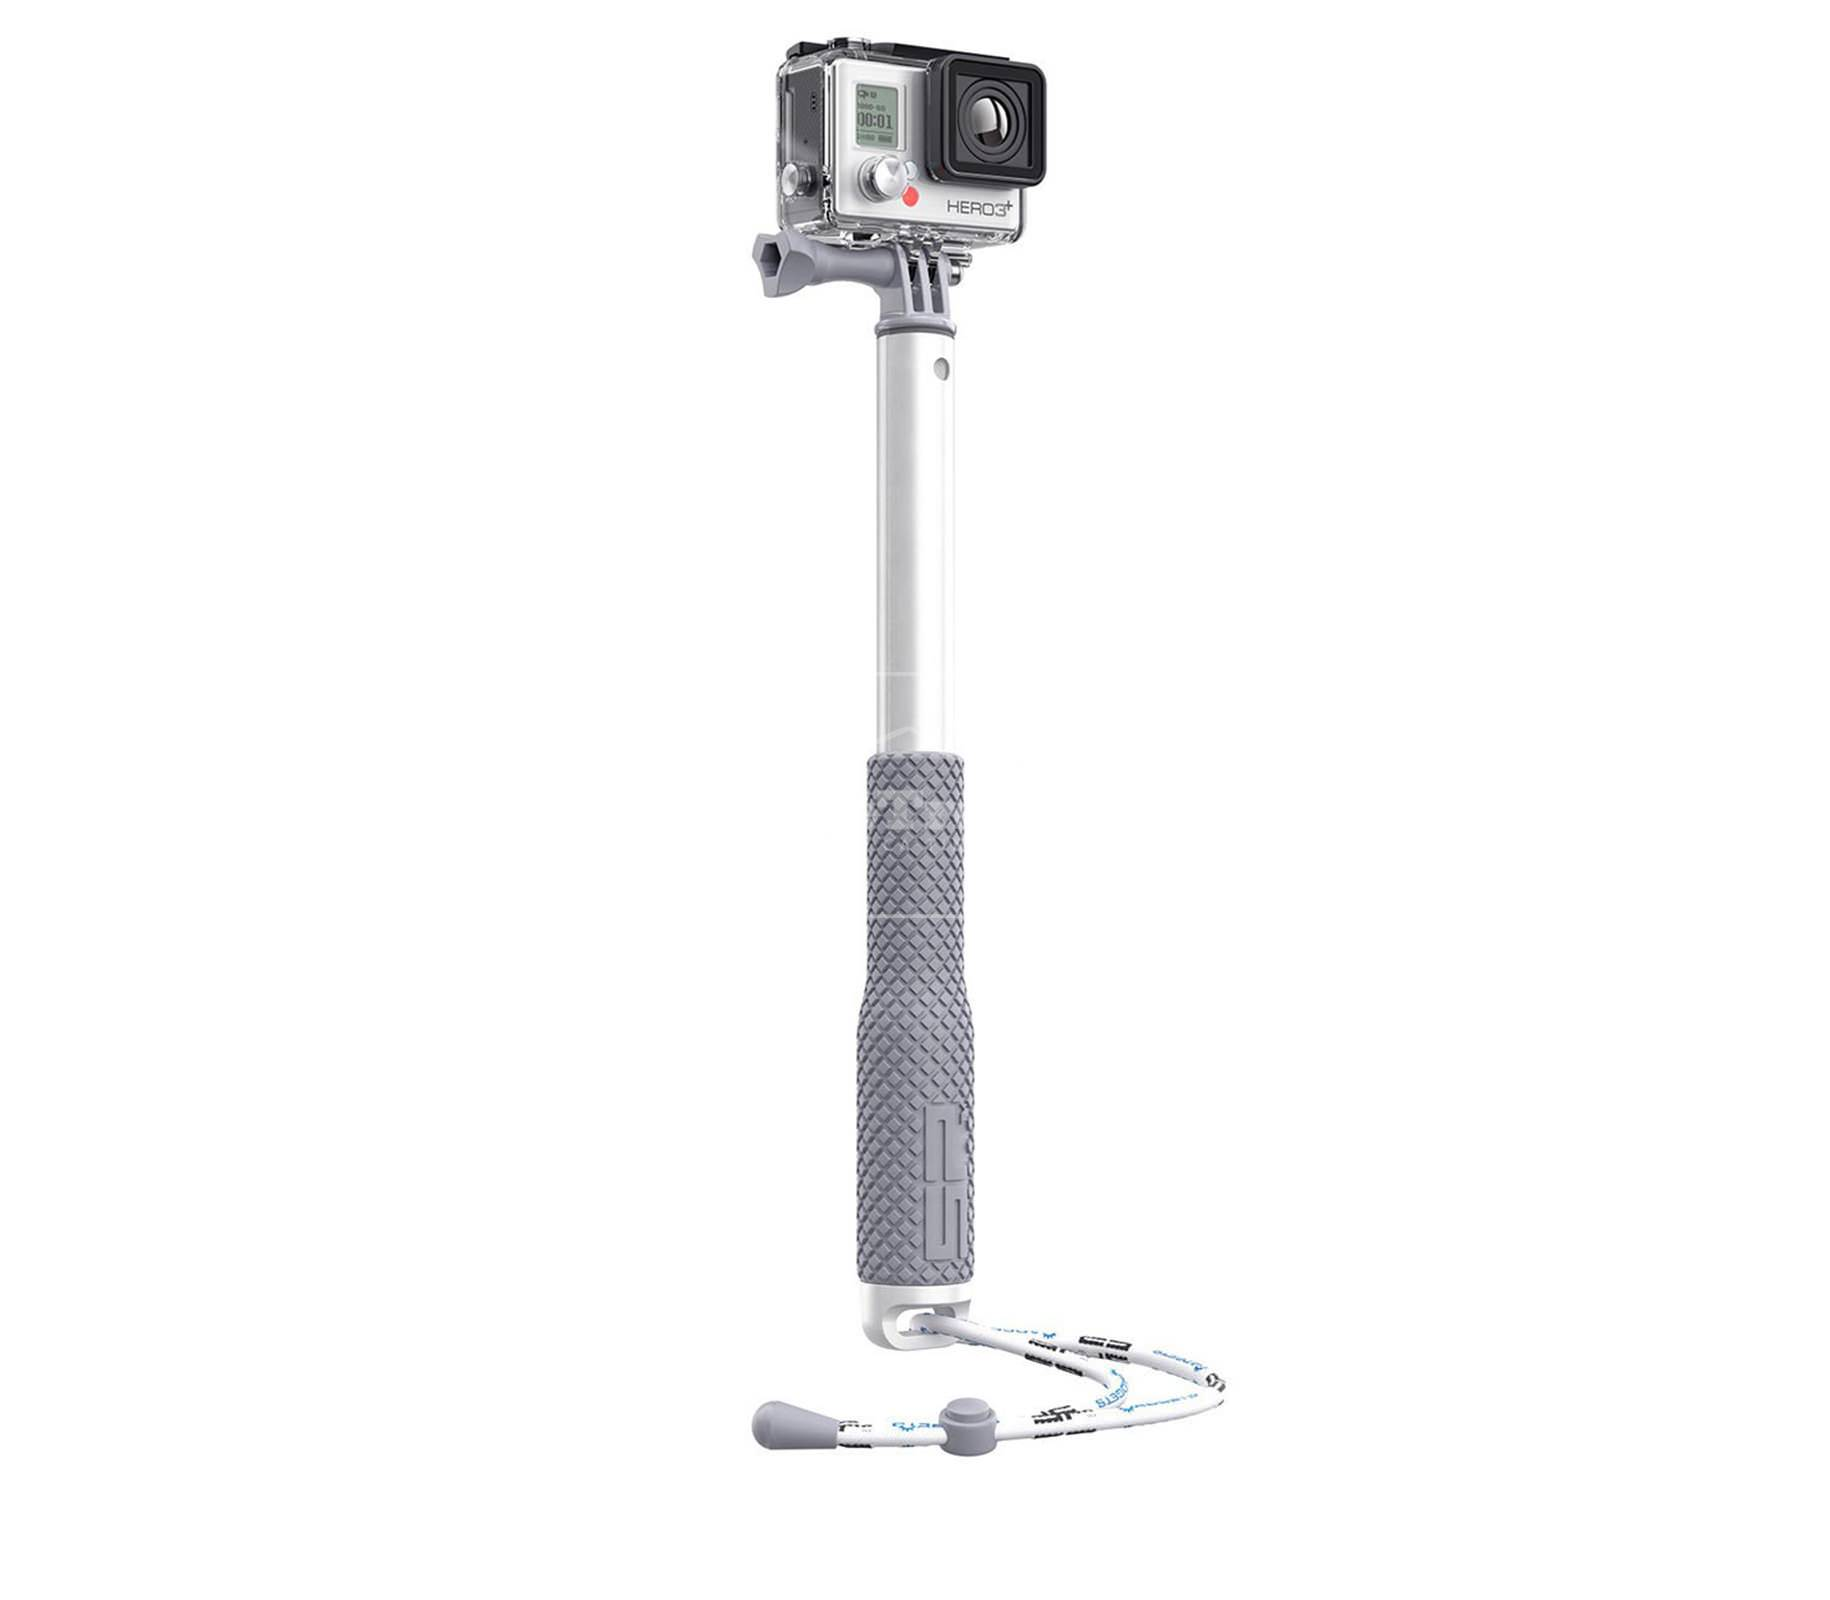 Gay-tu-suong-may-quay-GoPro-SP-POV-Pole-36-91cm-Silver-6342_HasThumb.jpg